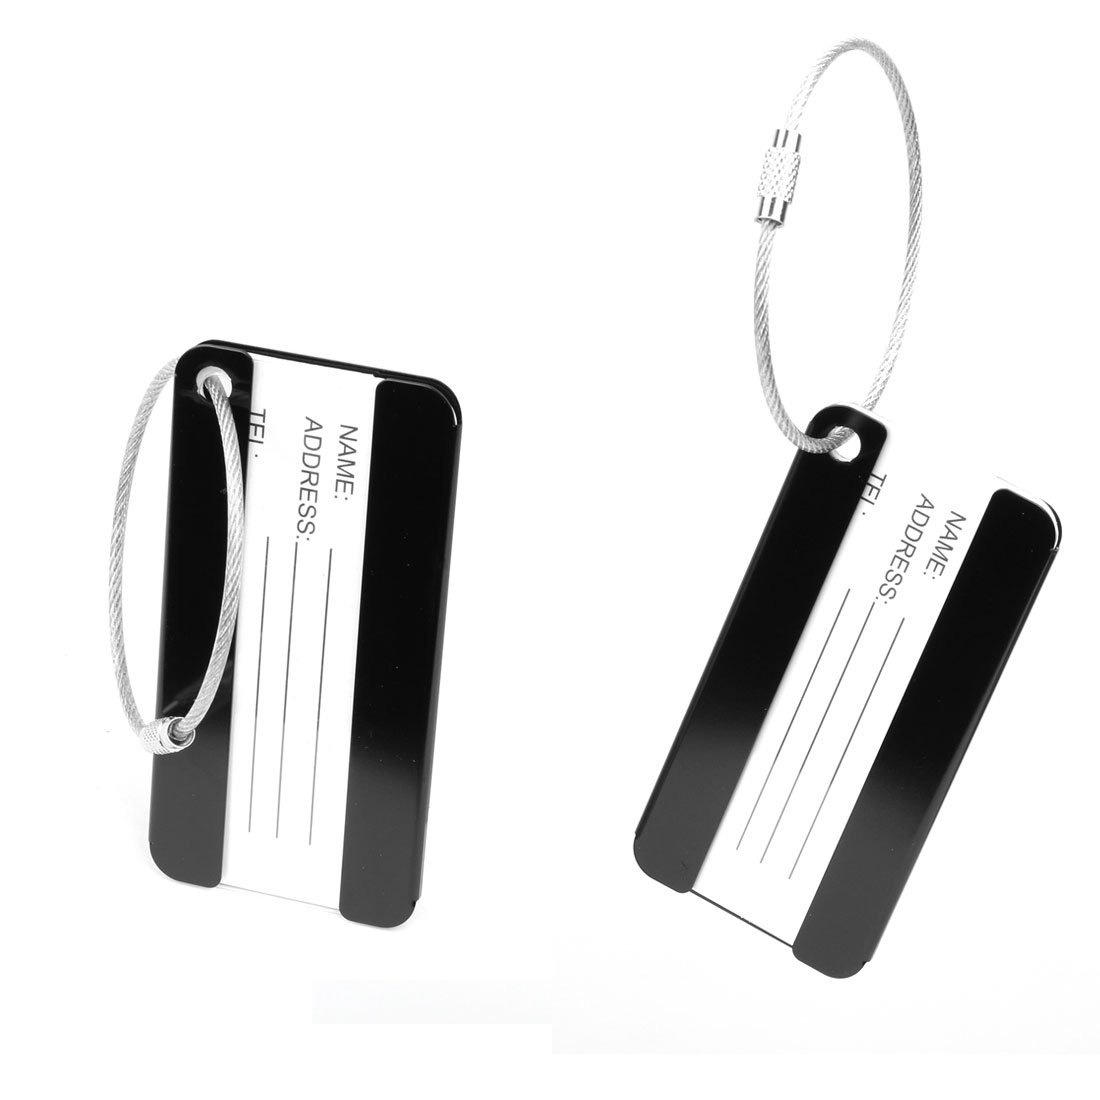 uxcell Aluminium Metal Travel Luggage Tags Card Holder Suitcase Baggage Name Address ID Bag Label Red 2pcs a17010600ux0399